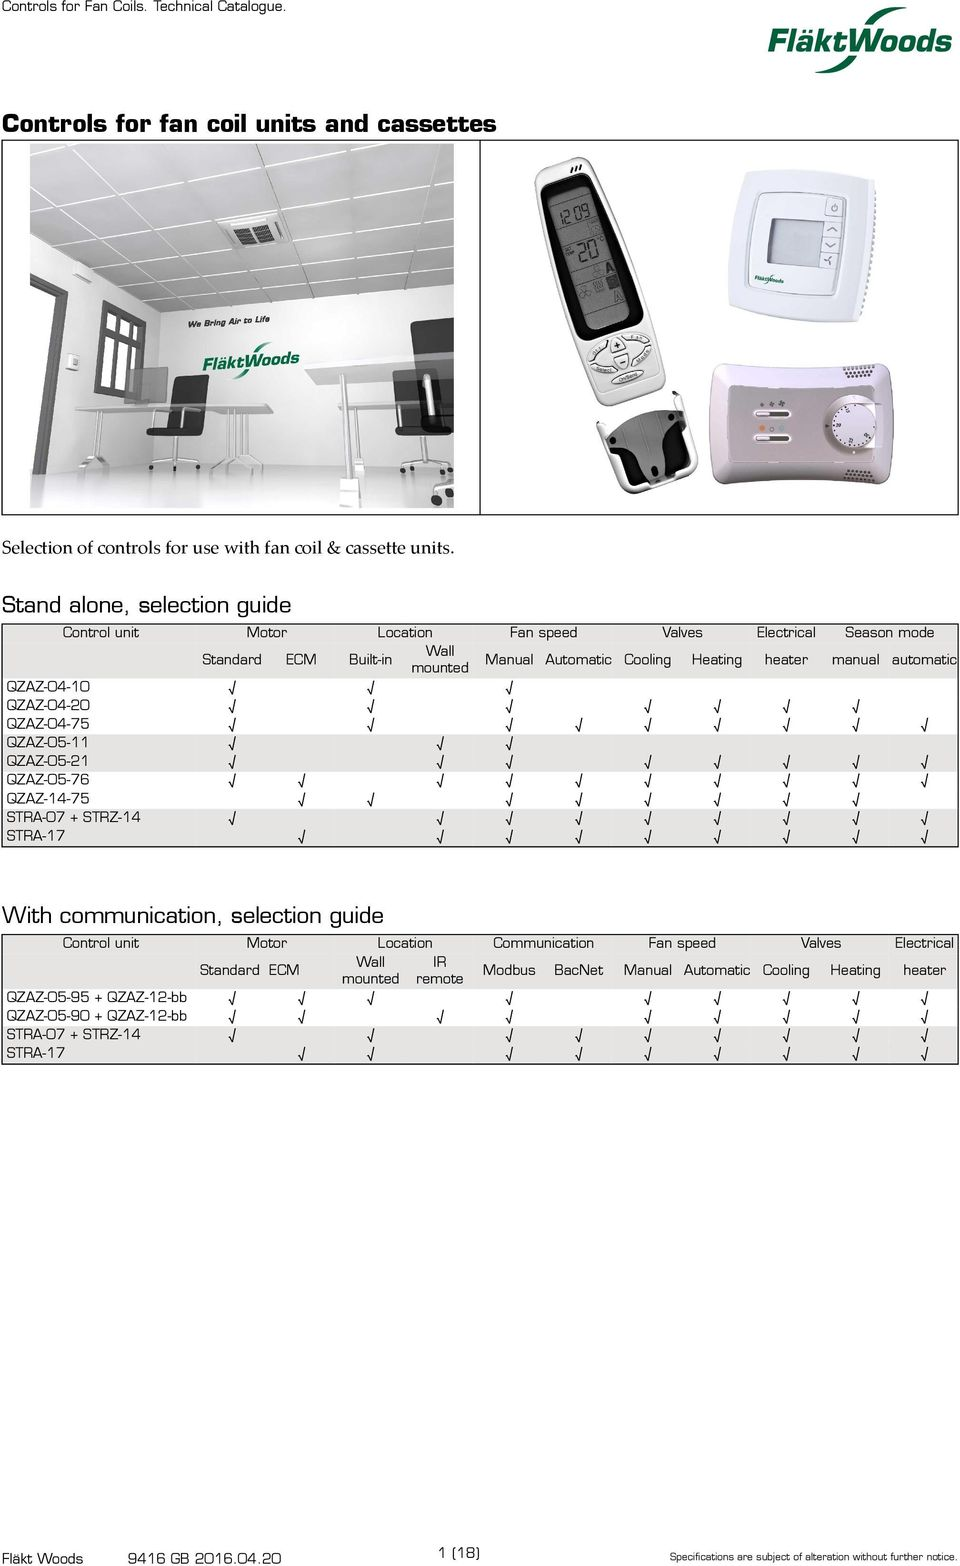 Controls for fan coil units and cassettes - PDF